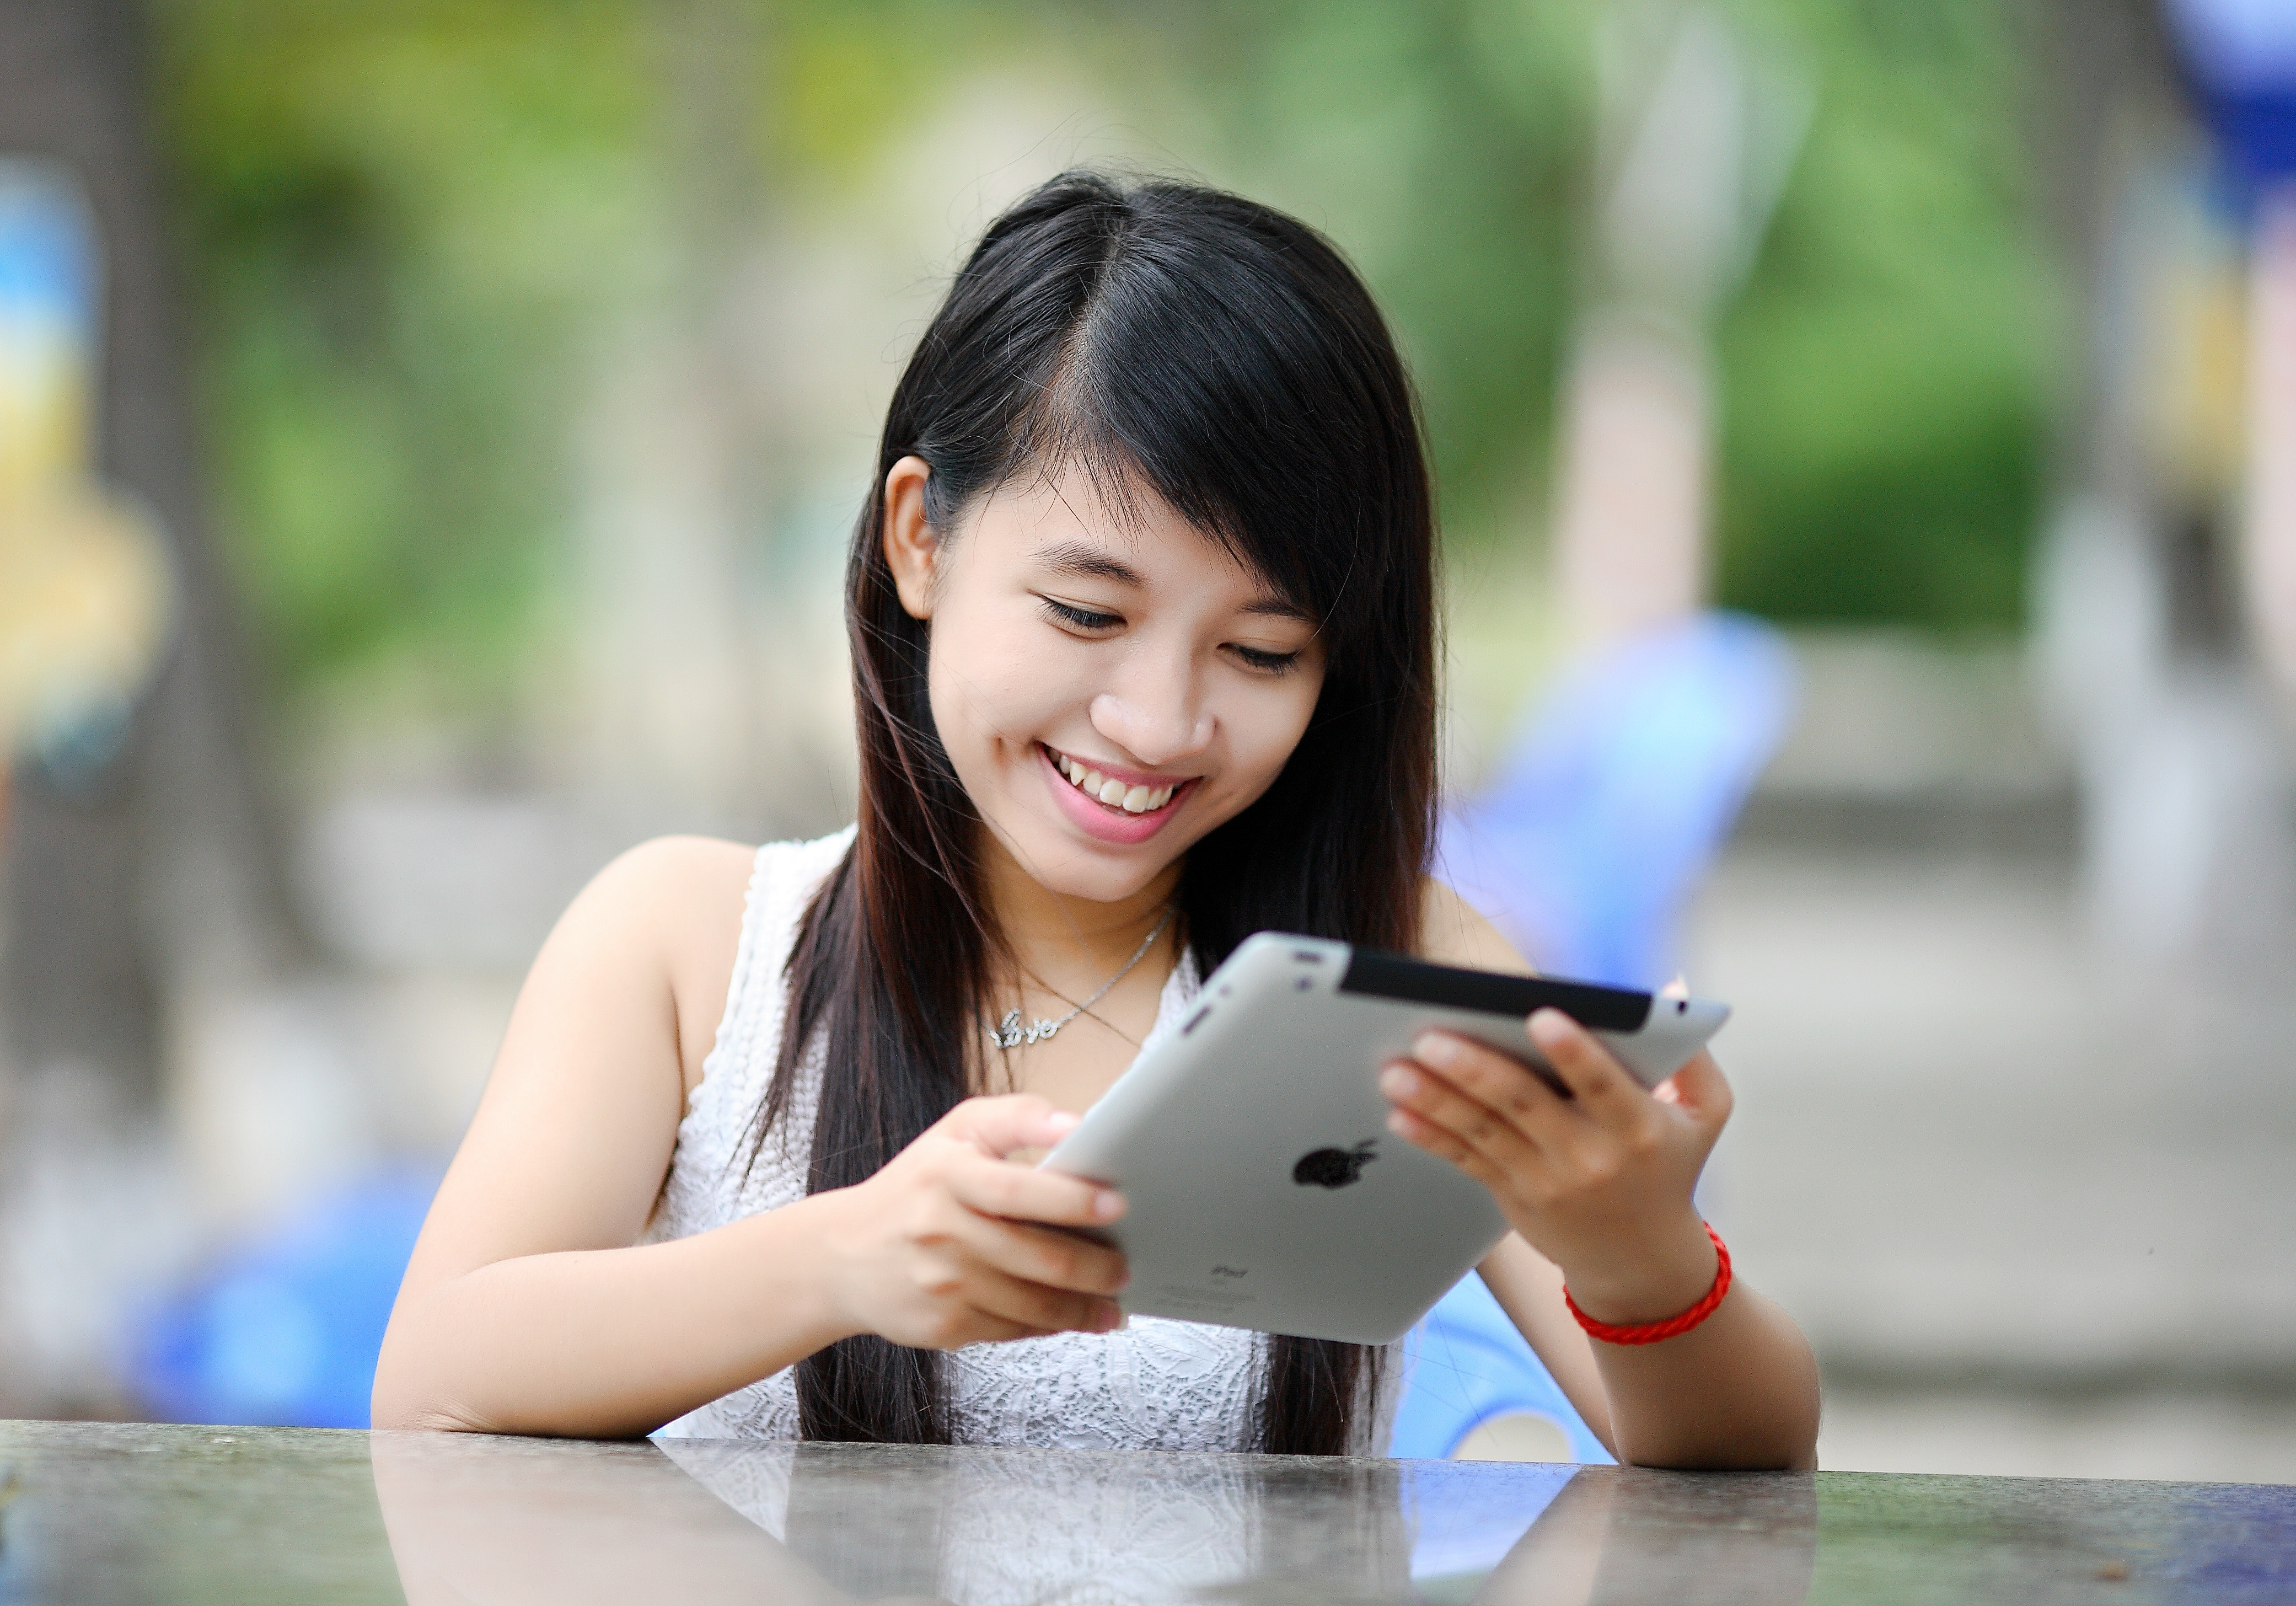 entertainment multimedia computing course by a Asian girl looking at an ipad